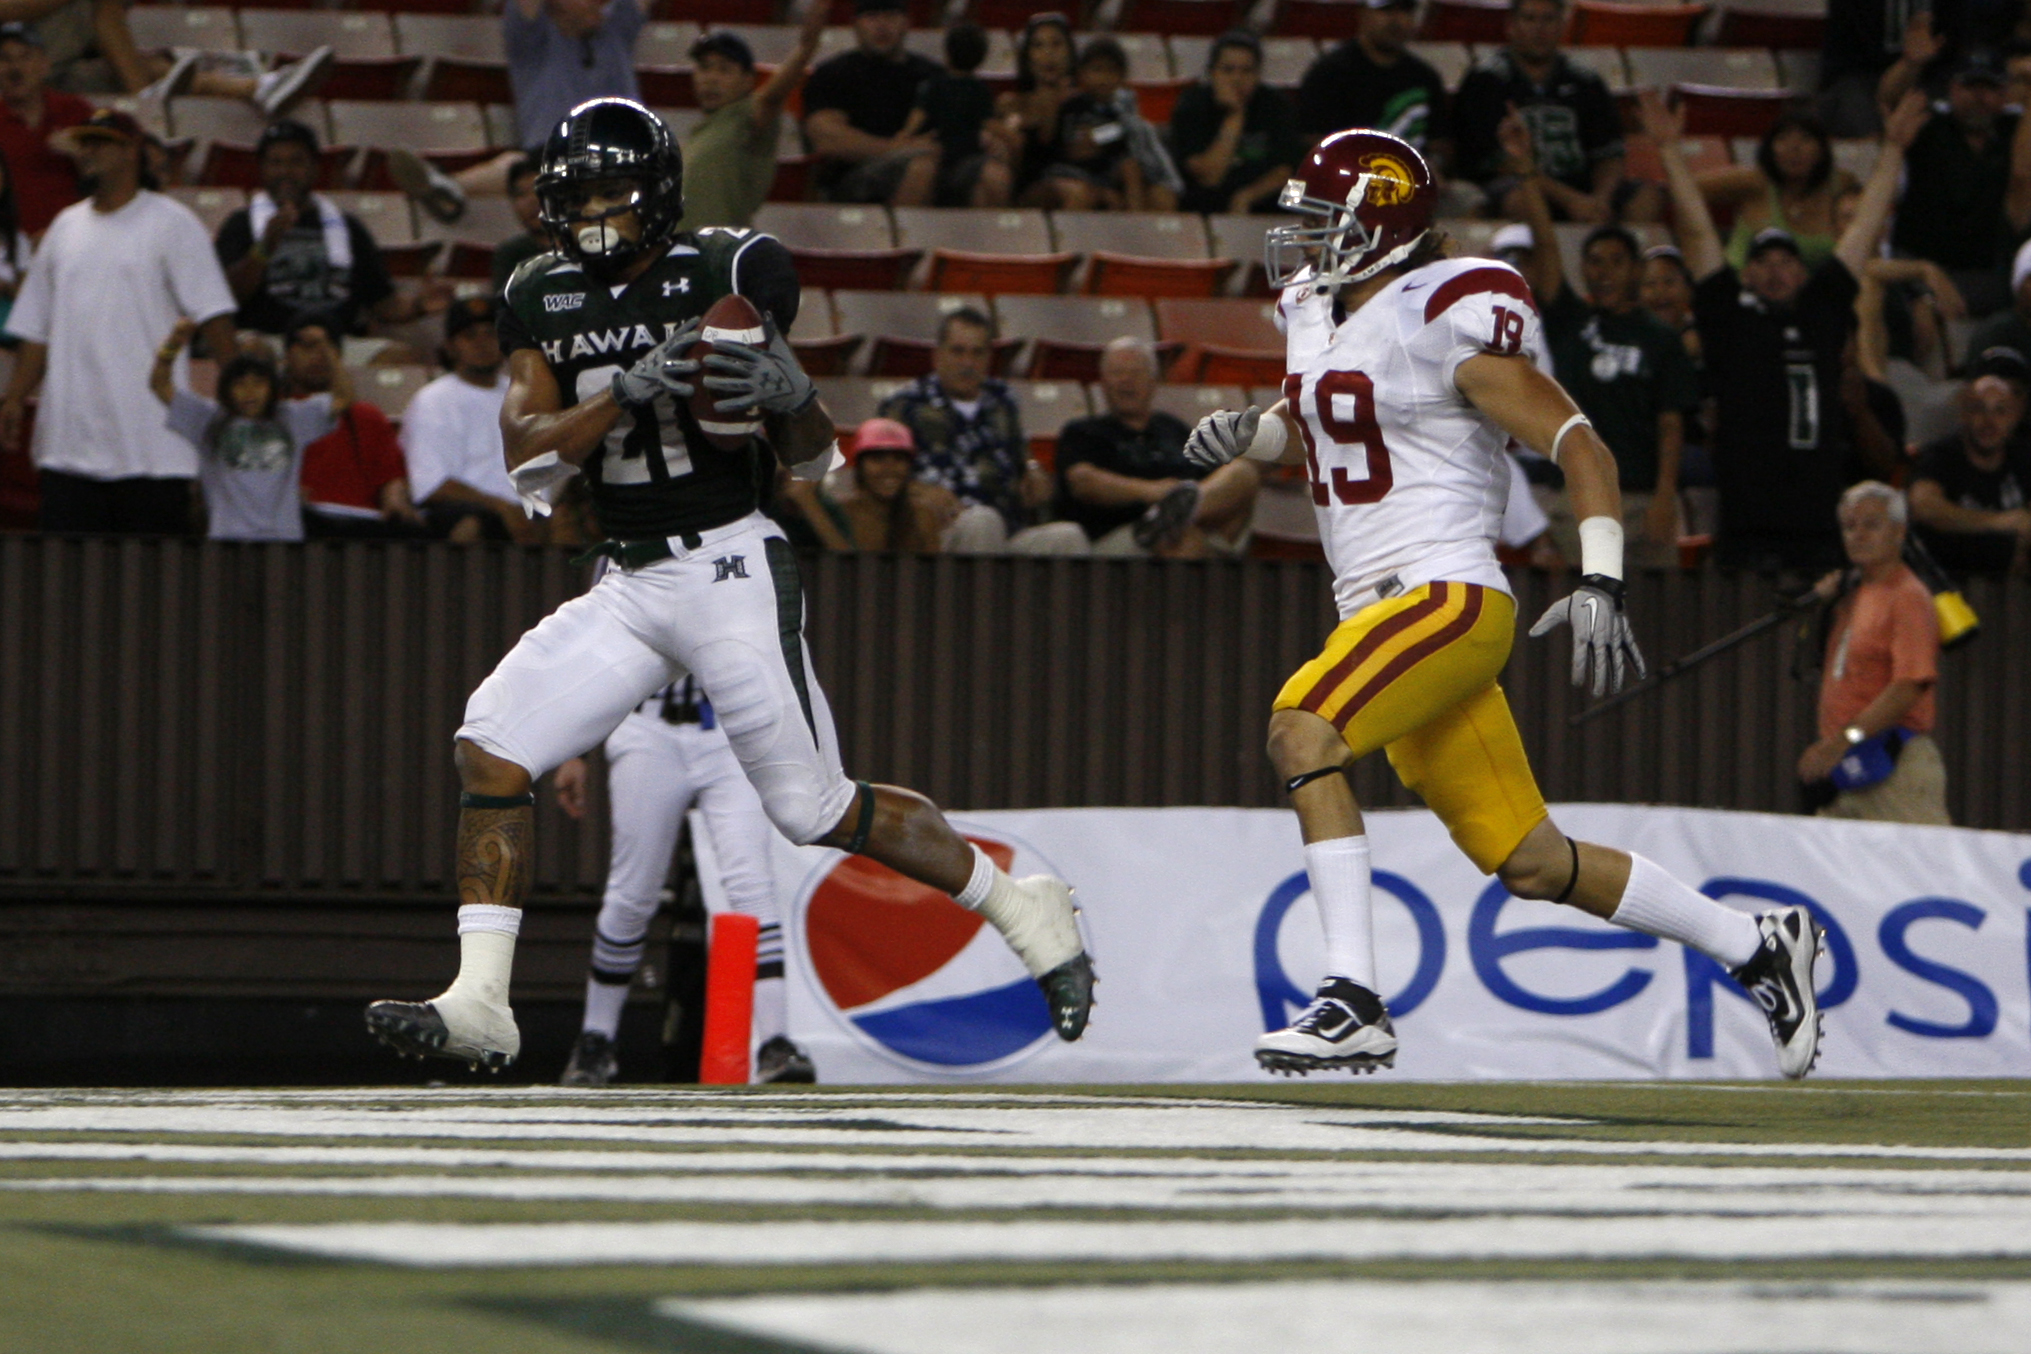 The Trojan defense gave up way too many points and yards against Hawaii.